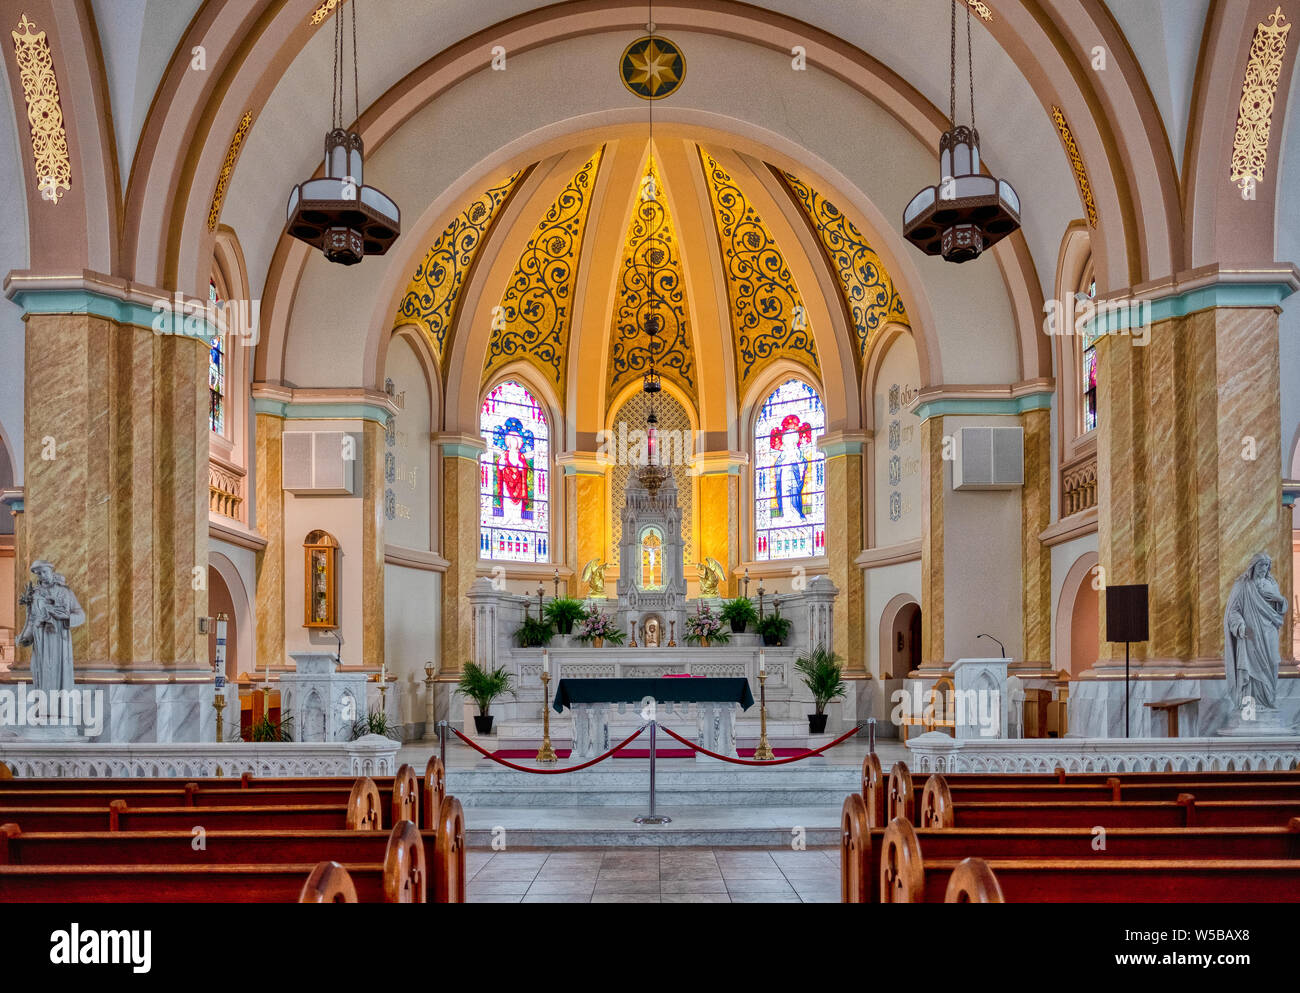 The sanctuary of Our Lady Star of the Sea Catholic Church in Cape ...